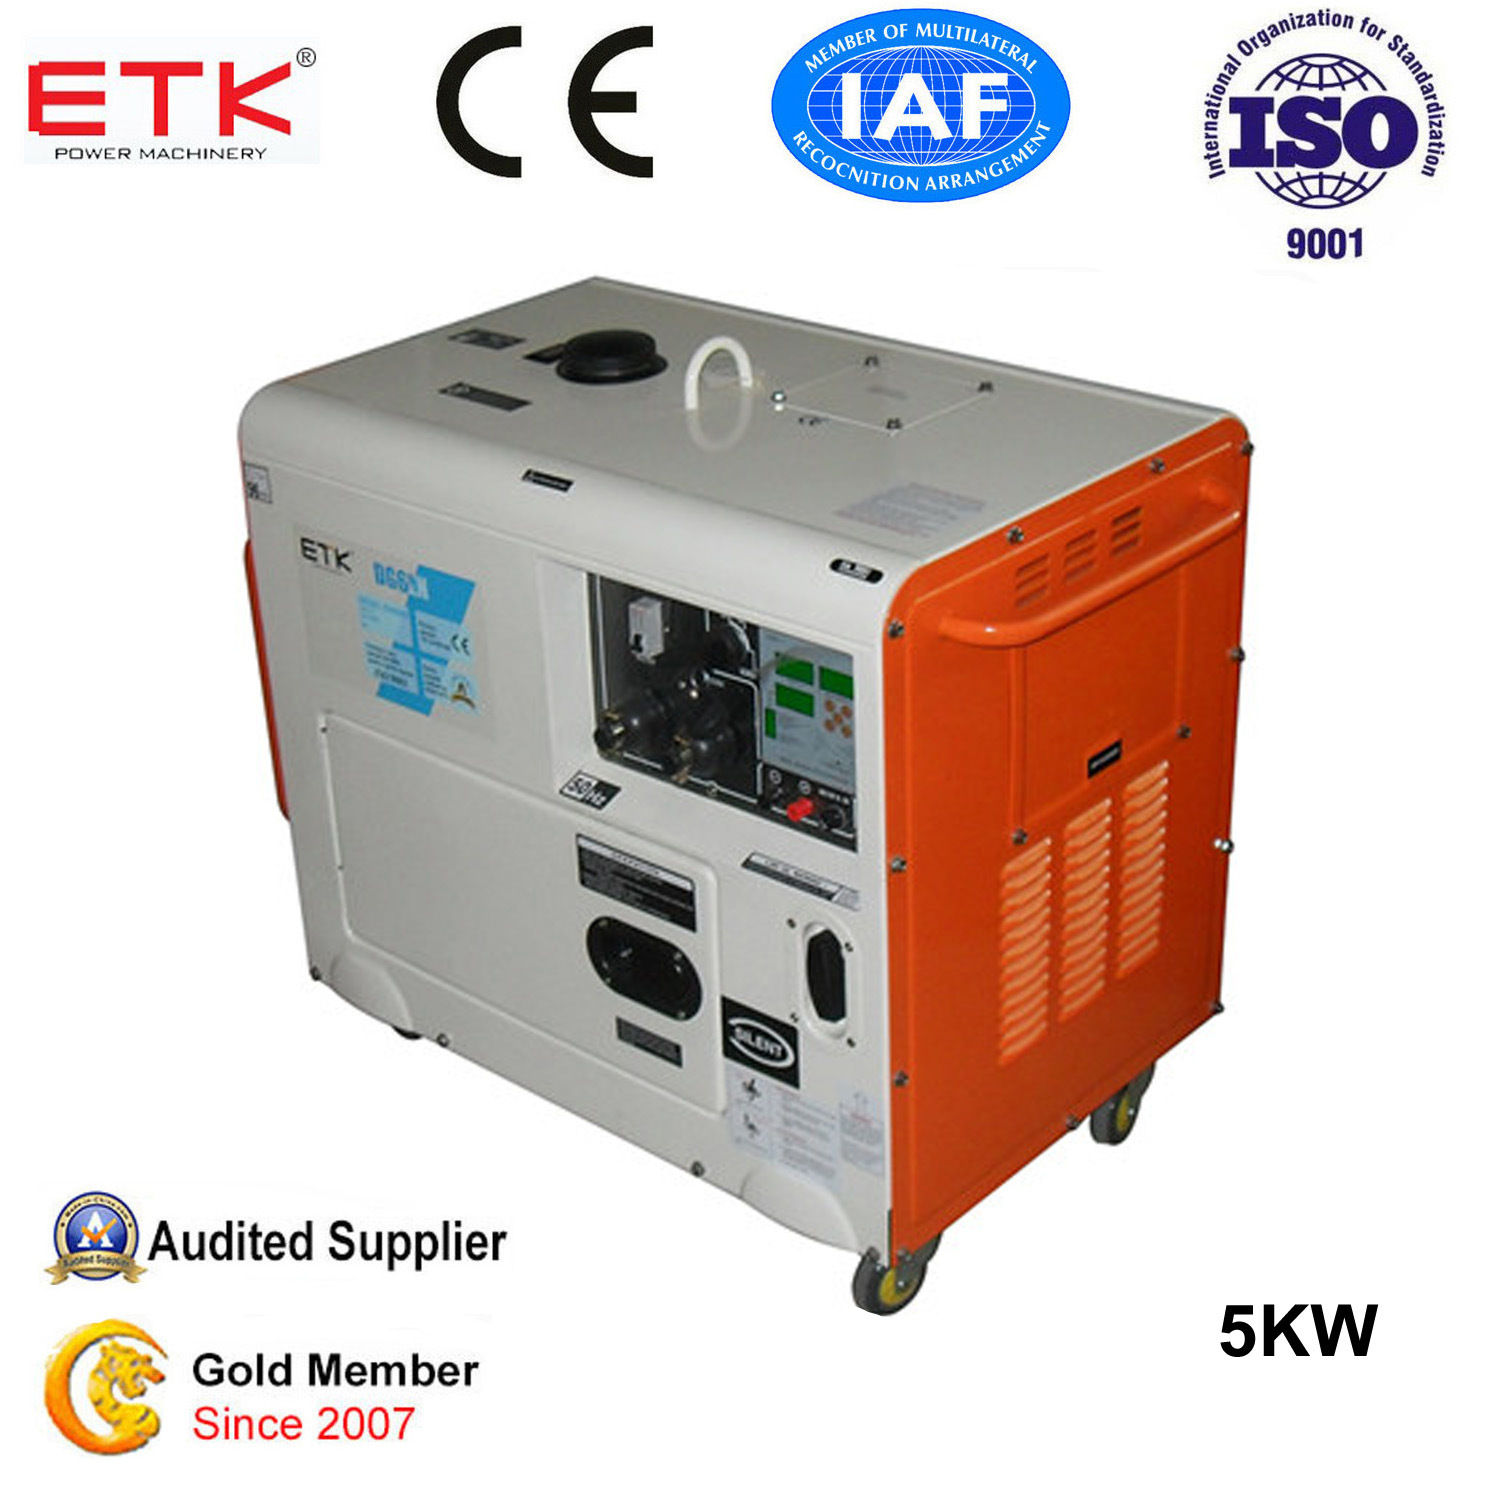 sel generator Changzhou ETK Power Machinery Co Ltd page 1